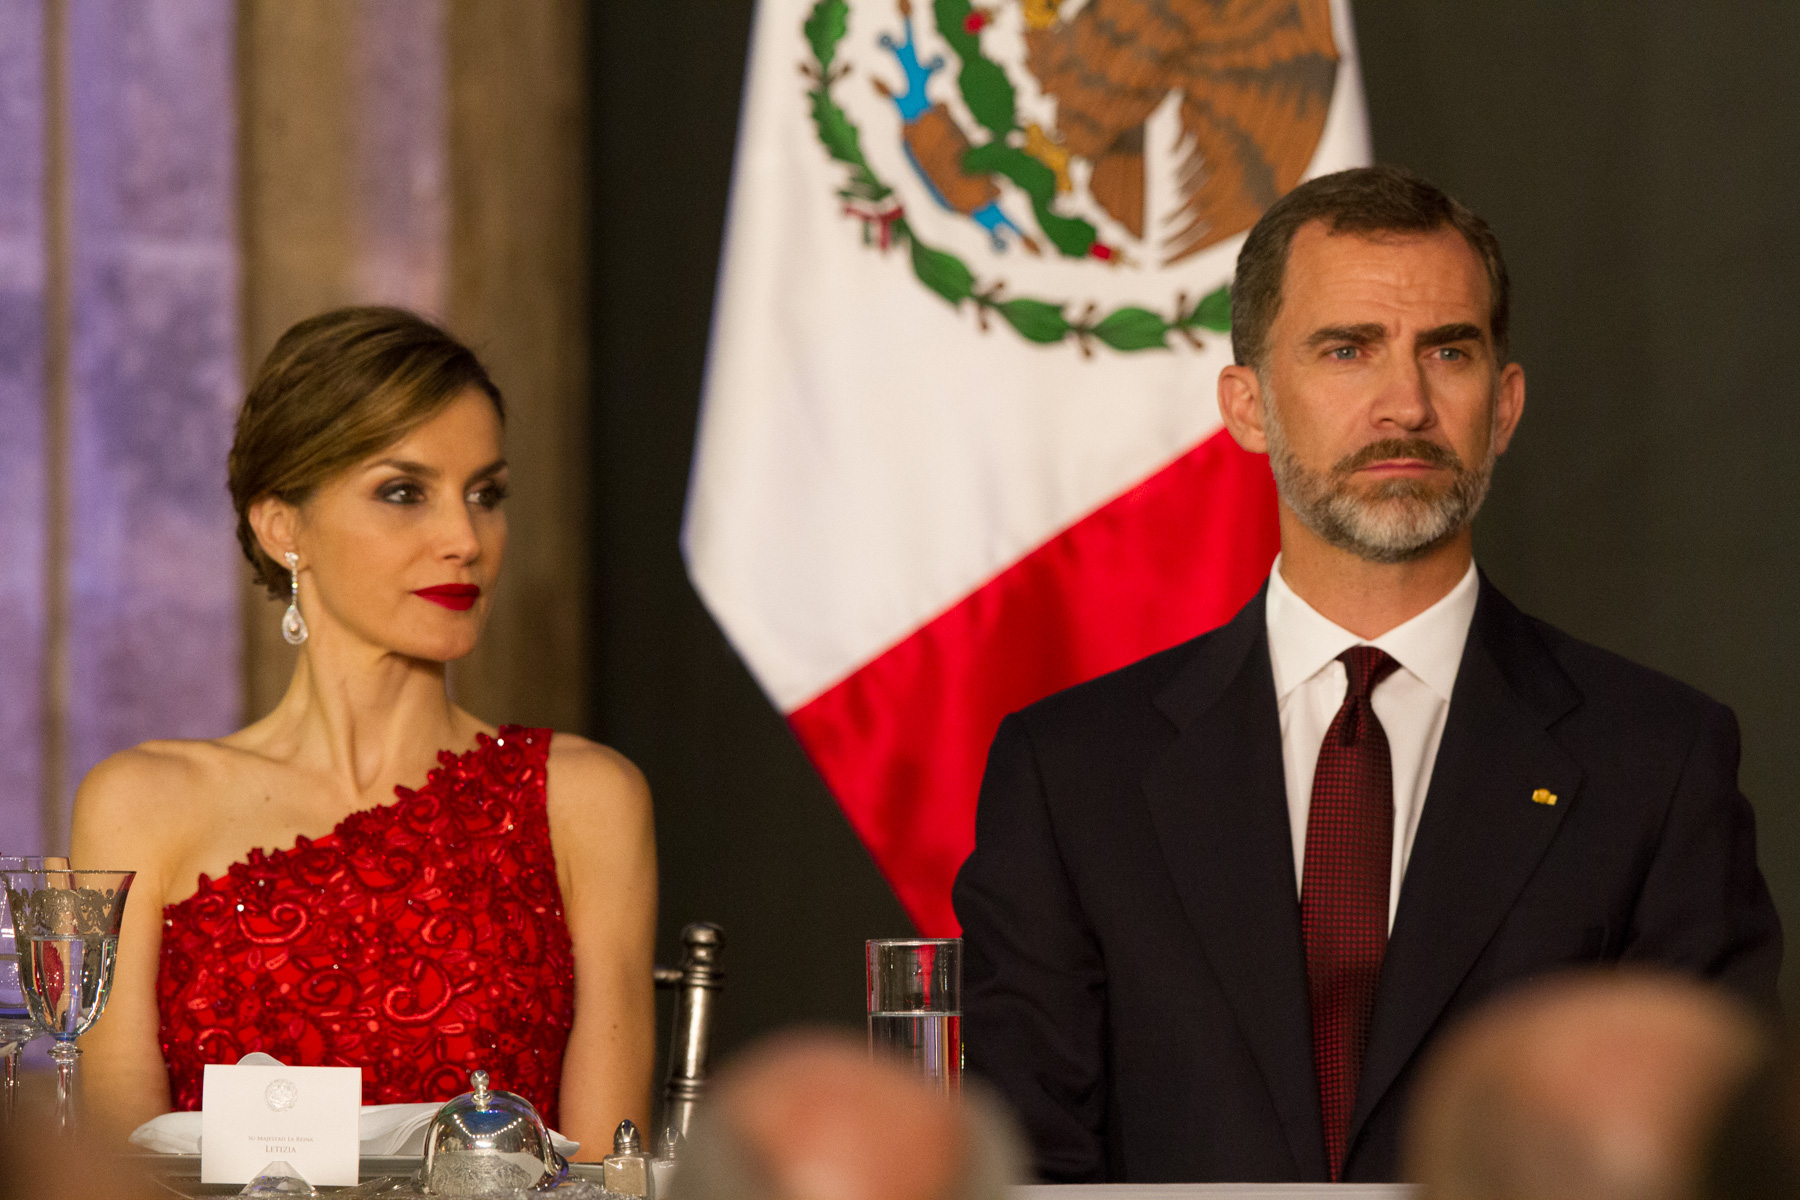 File:The King and the Queen of Spain (2015).jpg - Wikimedia Commons